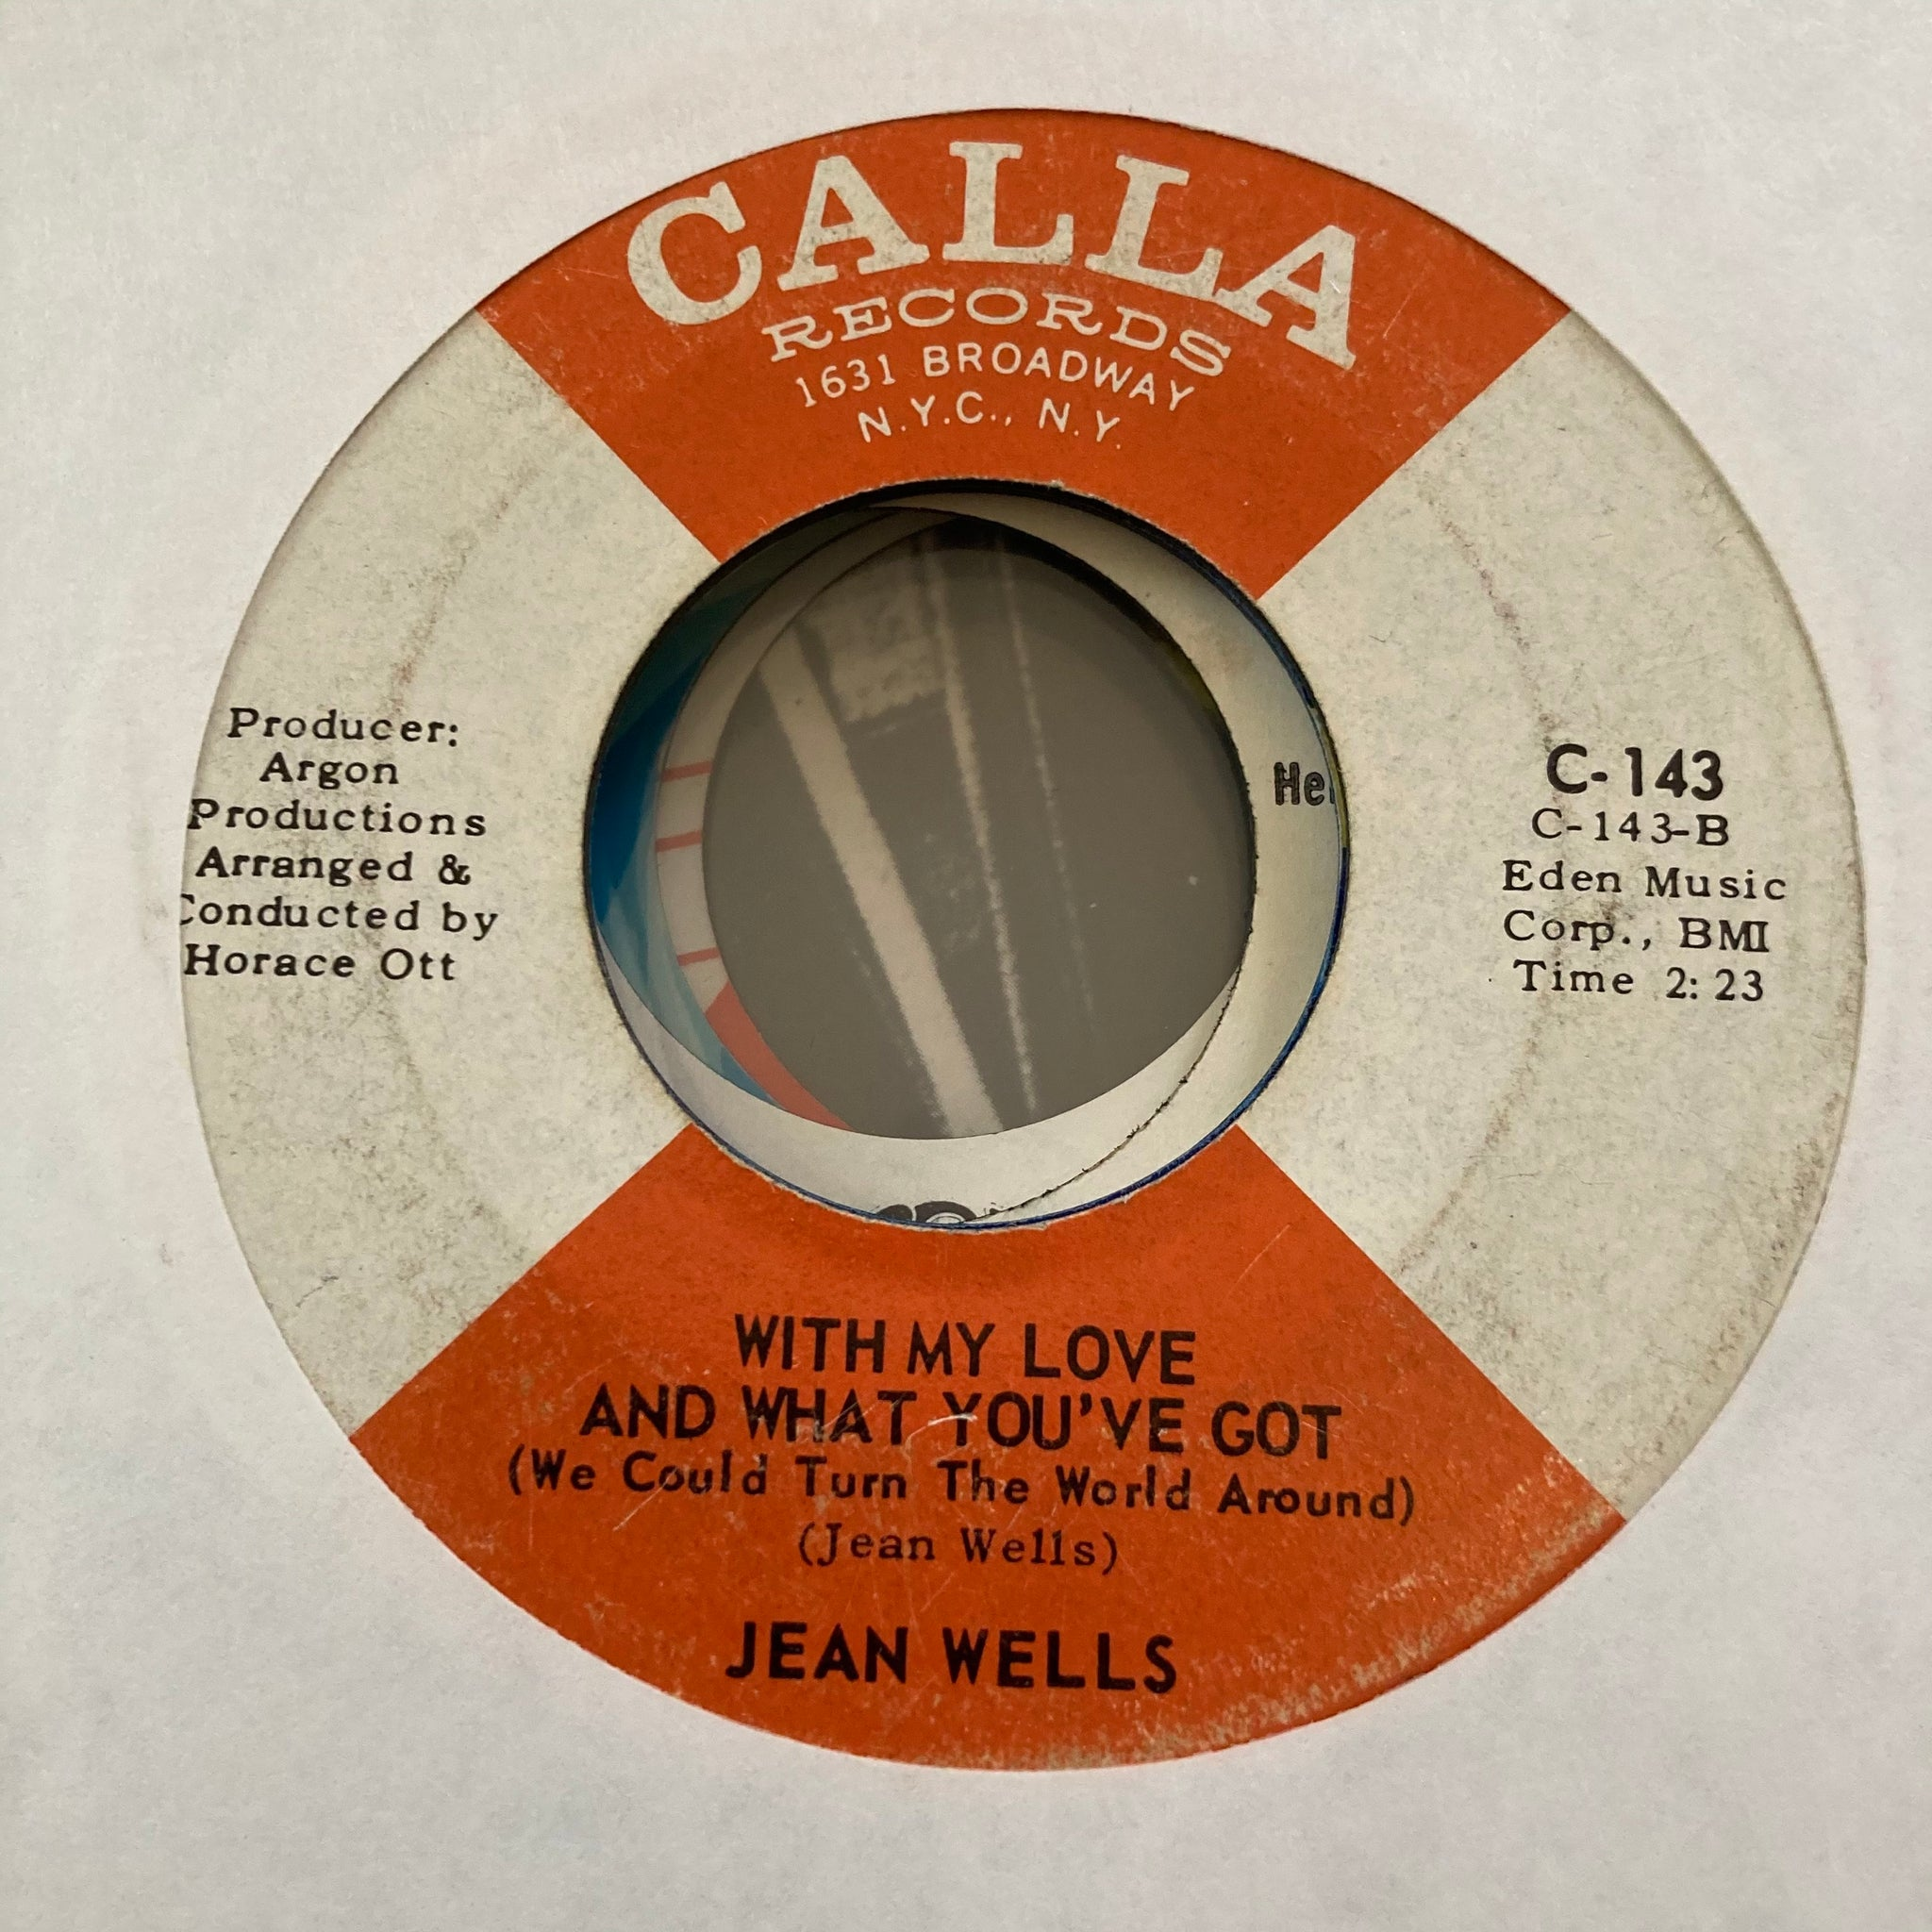 Jean Wells - With My Love and What You've Got (Used 45)